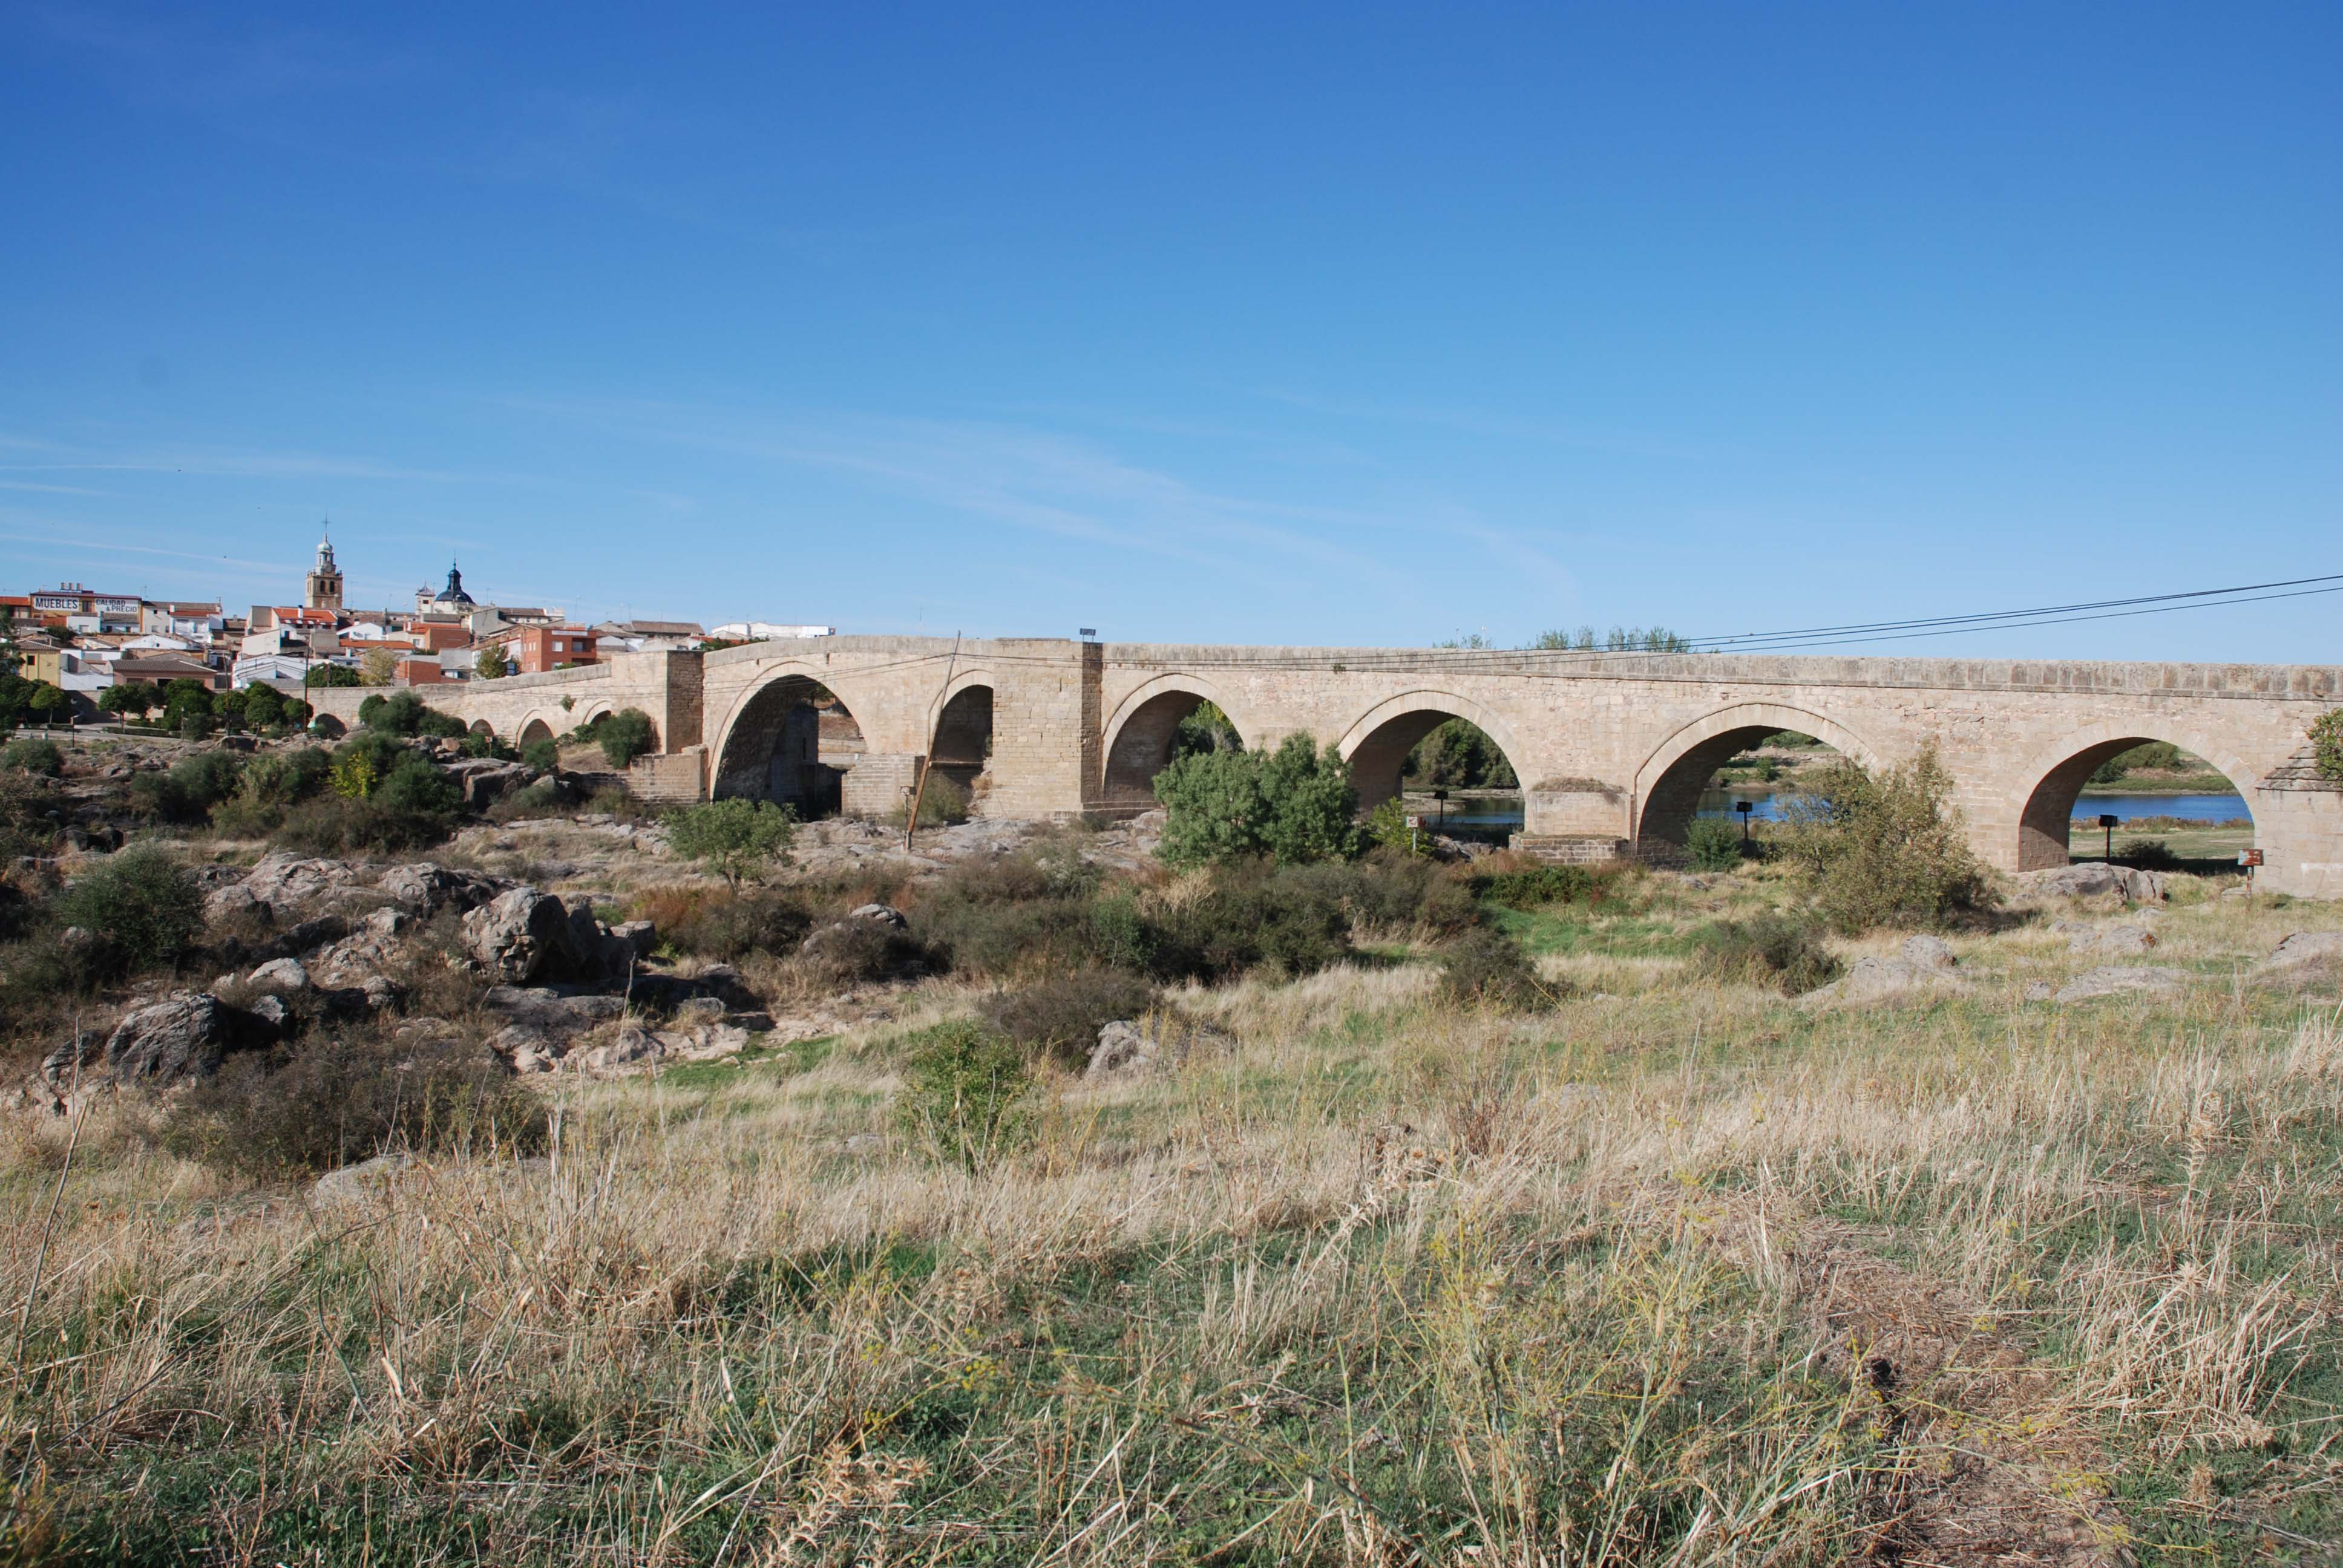 Roman bridges and remains abound